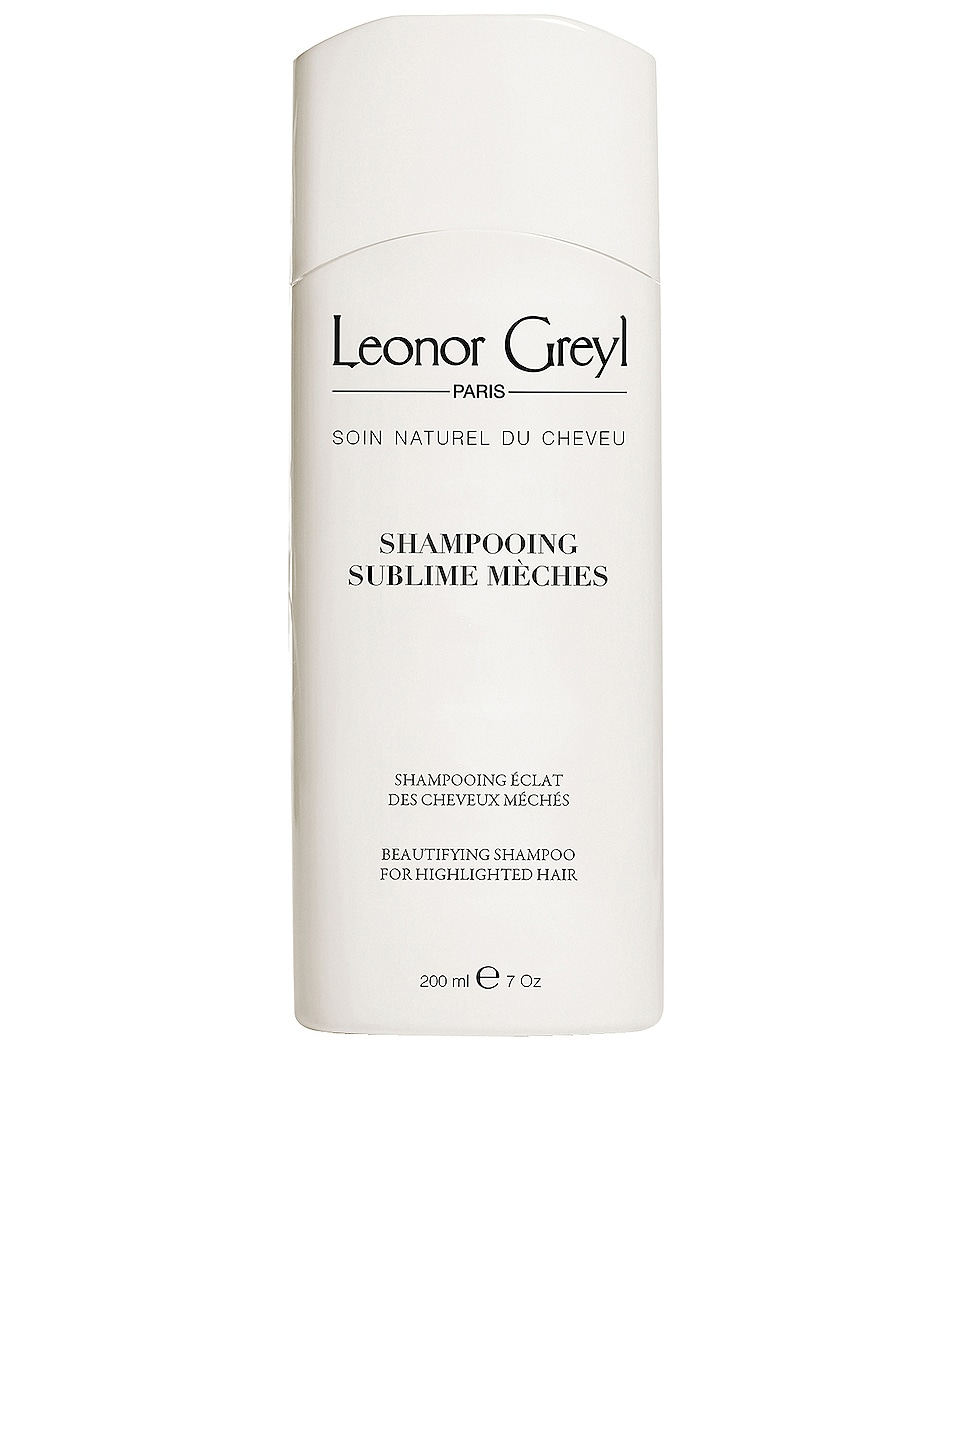 Leonor Greyl Paris Shampooing Sublime Meches Shampoo for Highlights